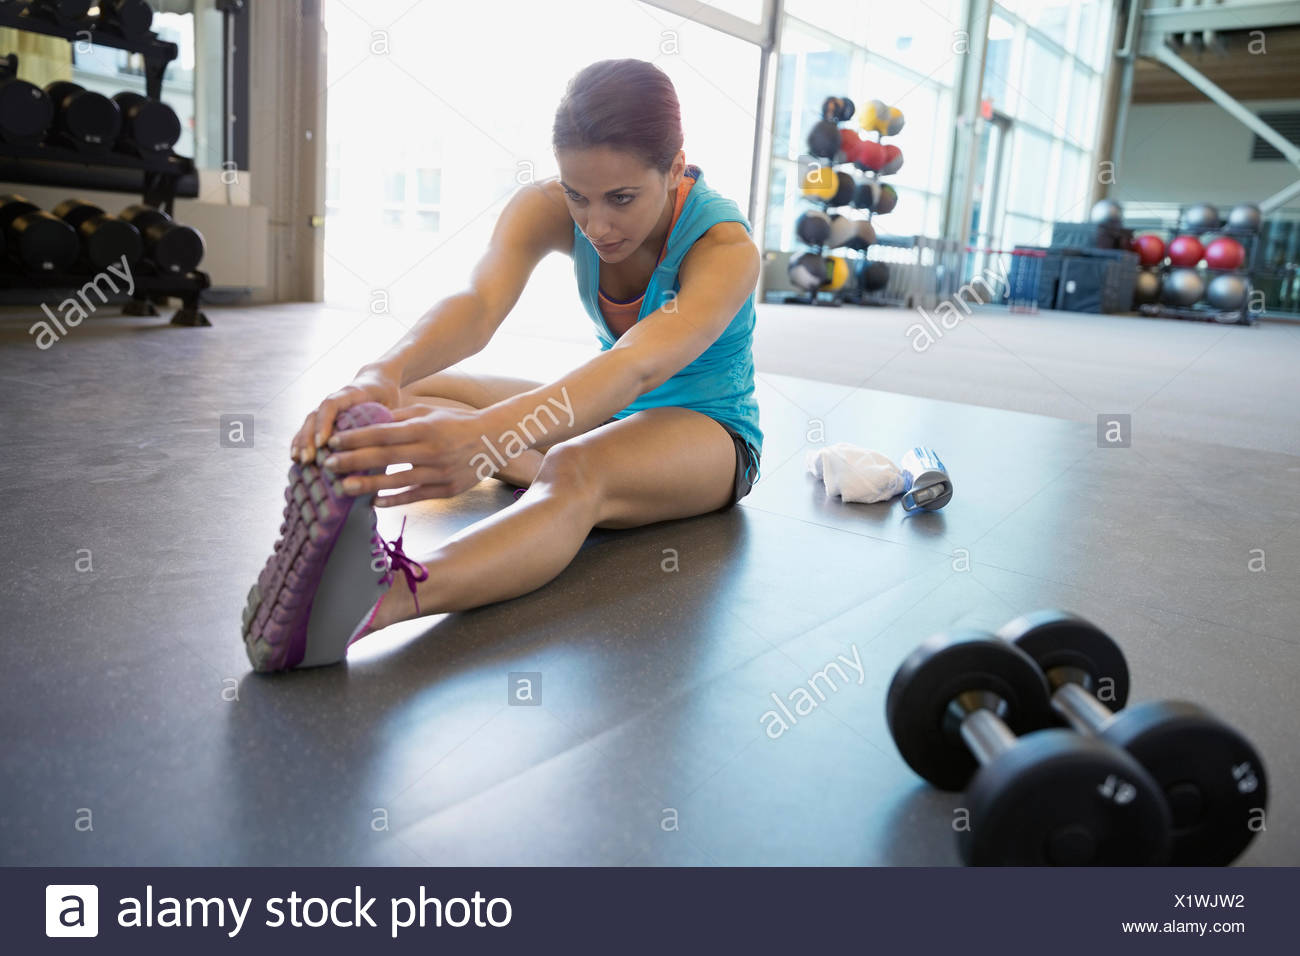 Woman stretching leg in gym - Stock Image